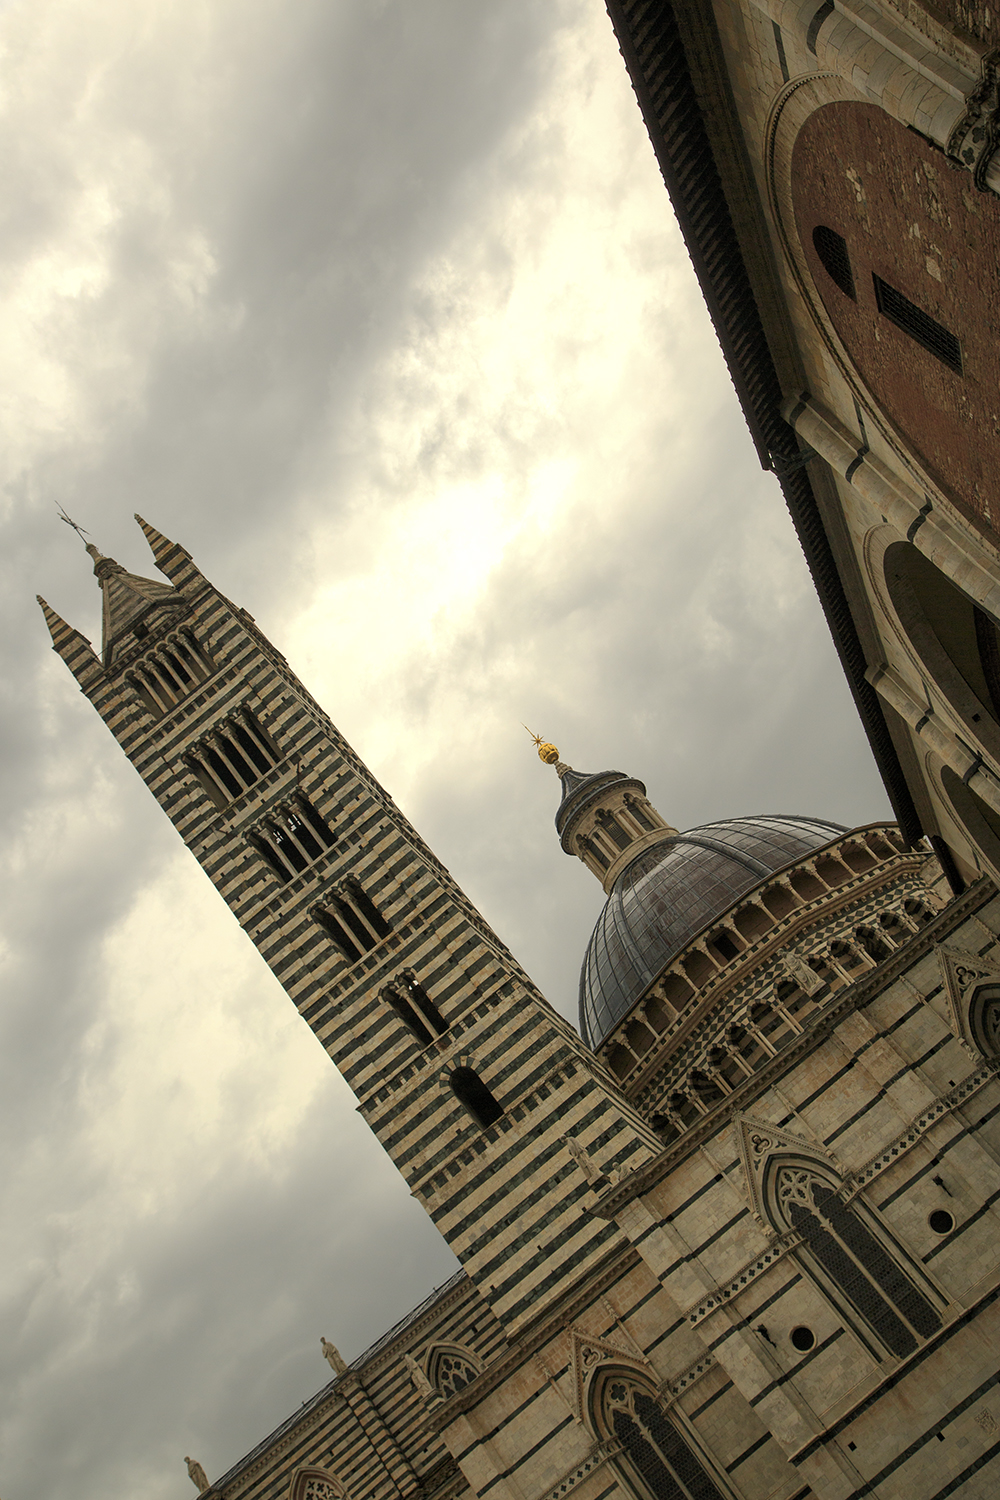 Suffusing My Senses In Siena - Image 10